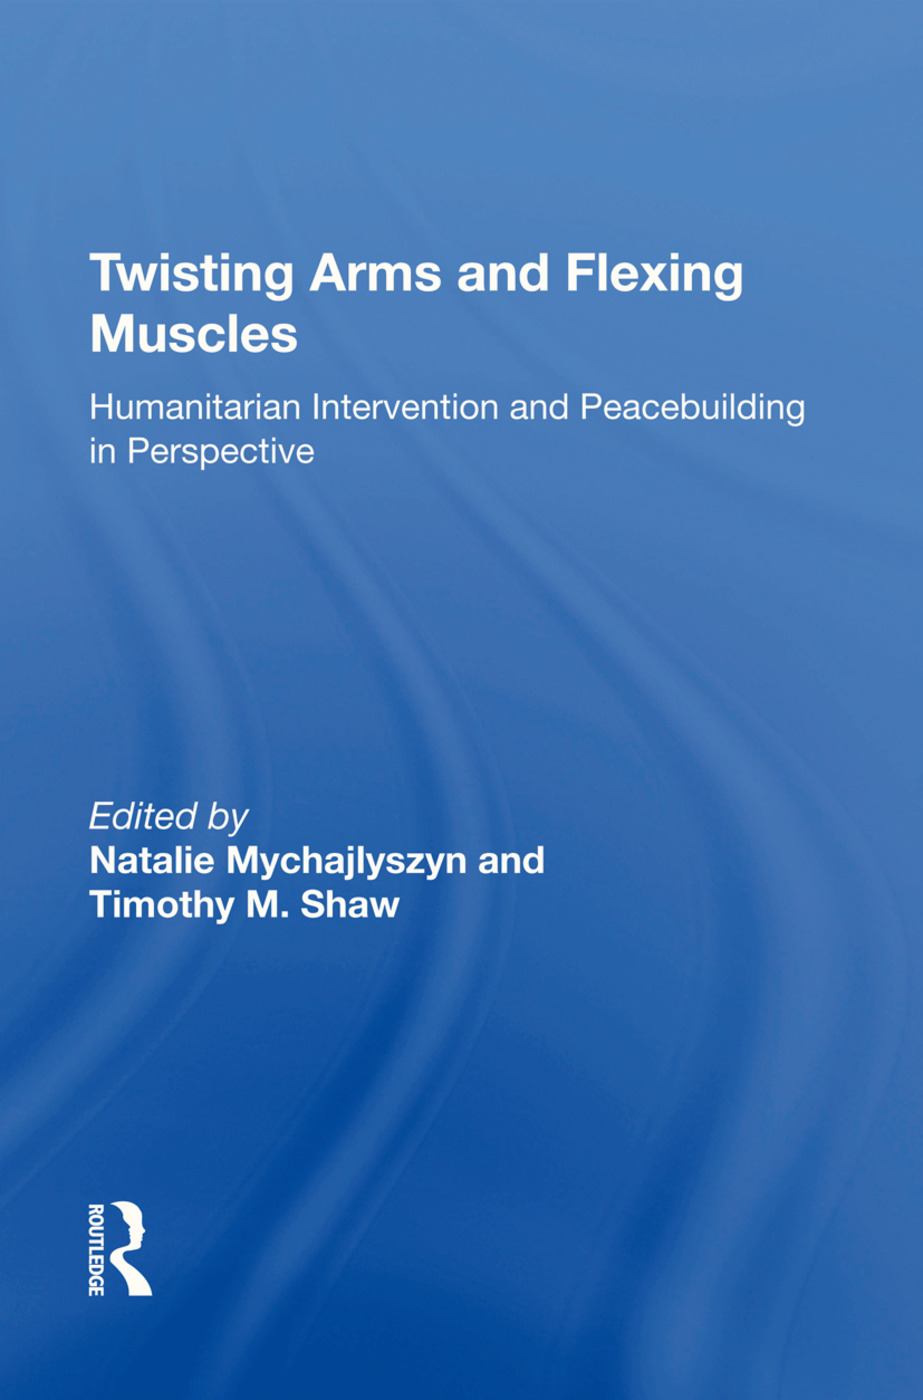 Twisting Arms and Flexing Muscles: Humanitarian Intervention and Peacebuilding in Perspective book cover